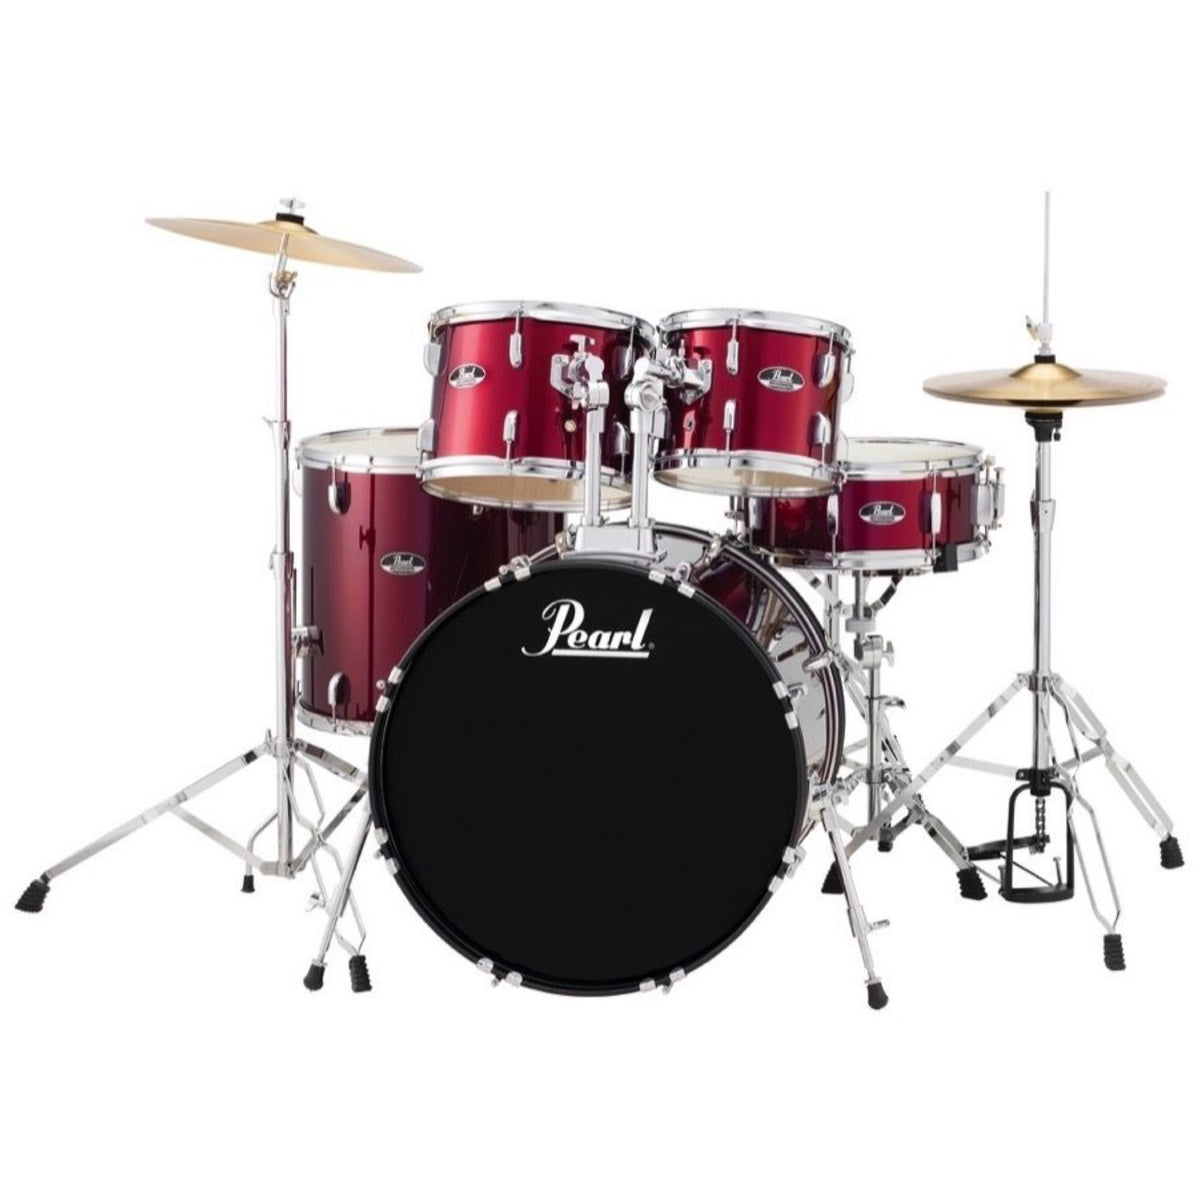 Pearl RS525SC Roadshow Complete Drum Kit, 5-Piece, Wine Red